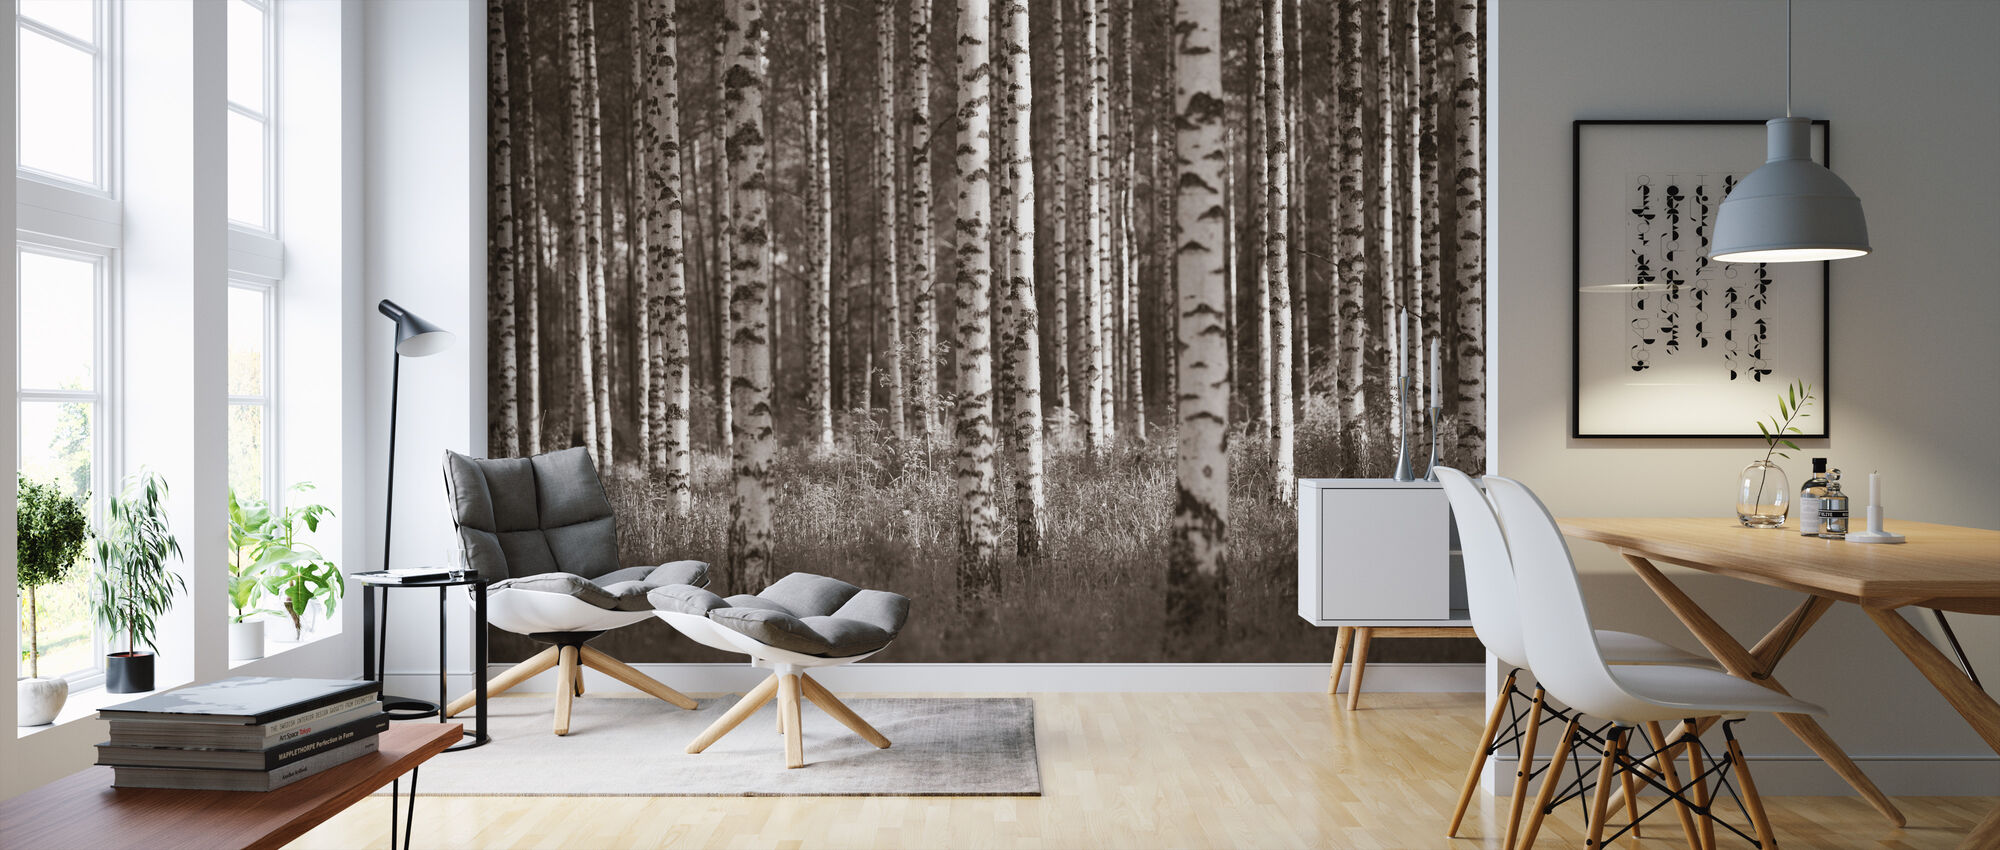 Birch Forest - Sepia - Wallpaper - Living Room